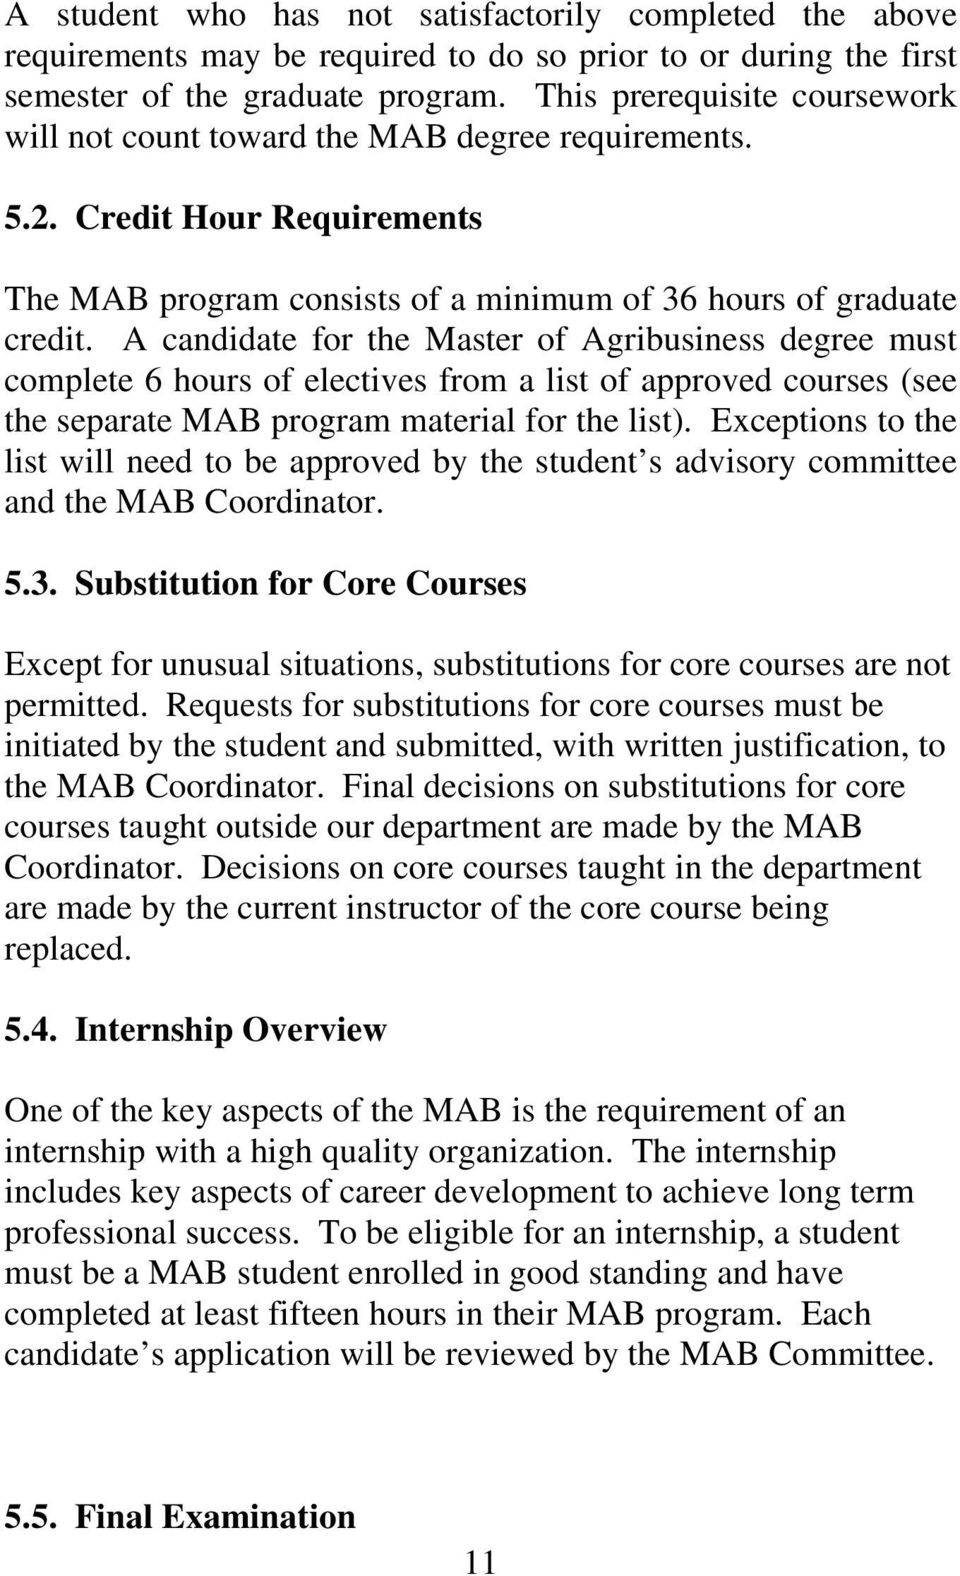 A candidate for the Master of Agribusiness degree must complete 6 hours of electives from a list of approved courses (see the separate MAB program material for the list).